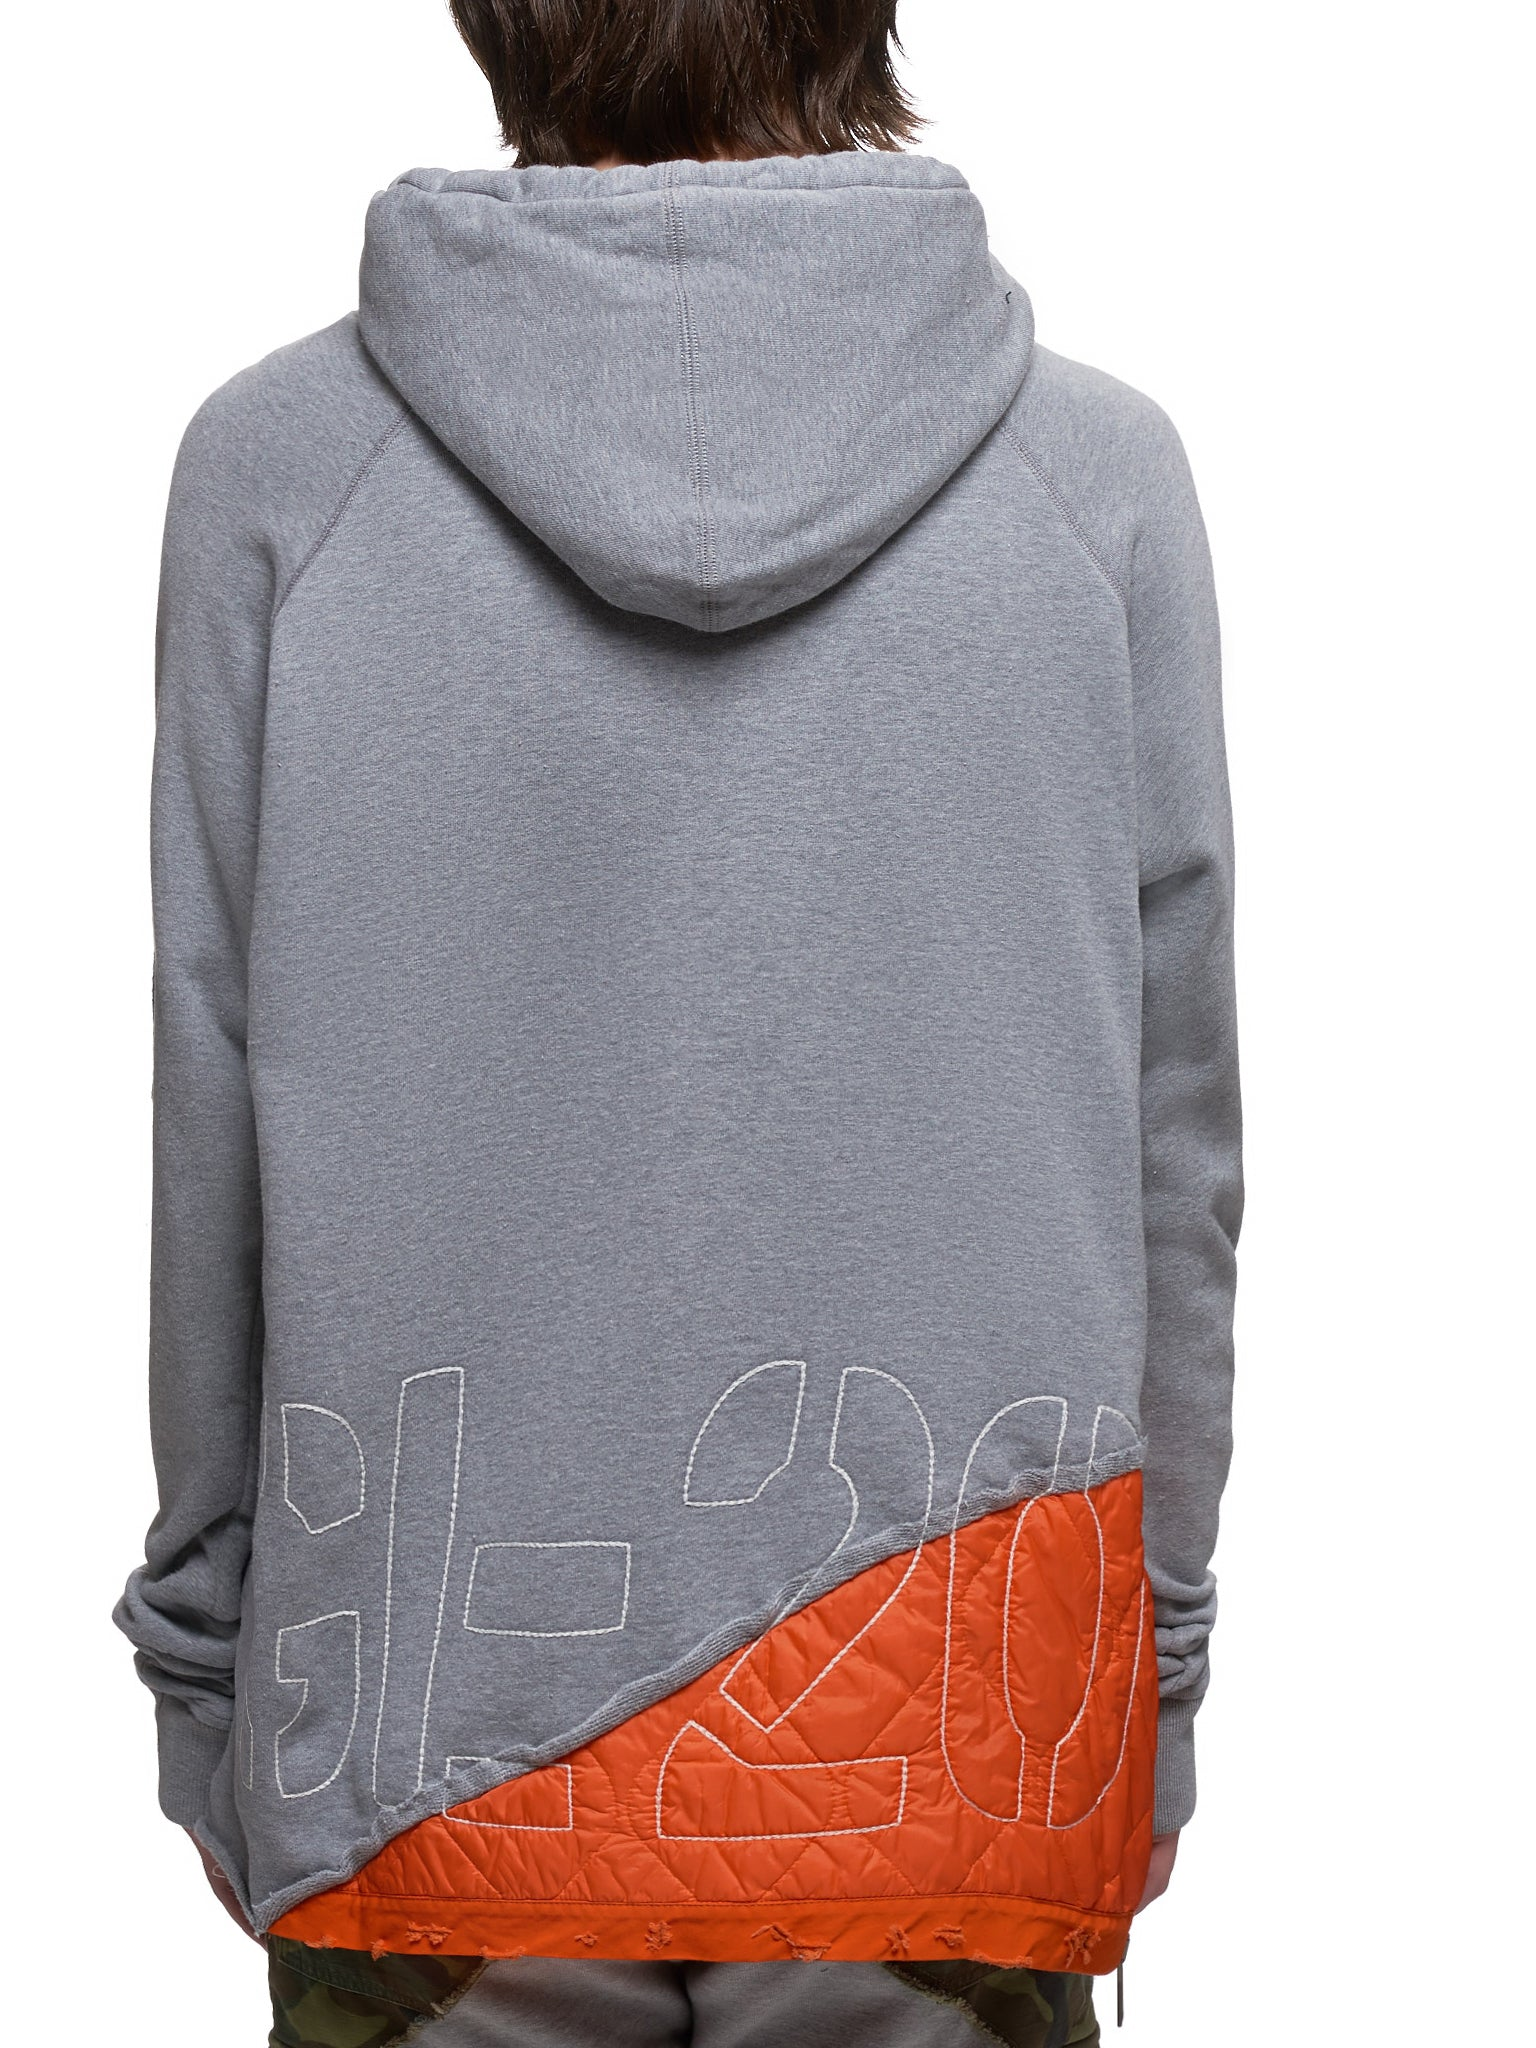 Paul & Shark by Greg Lauren Hoodie - Hlorenzo Back